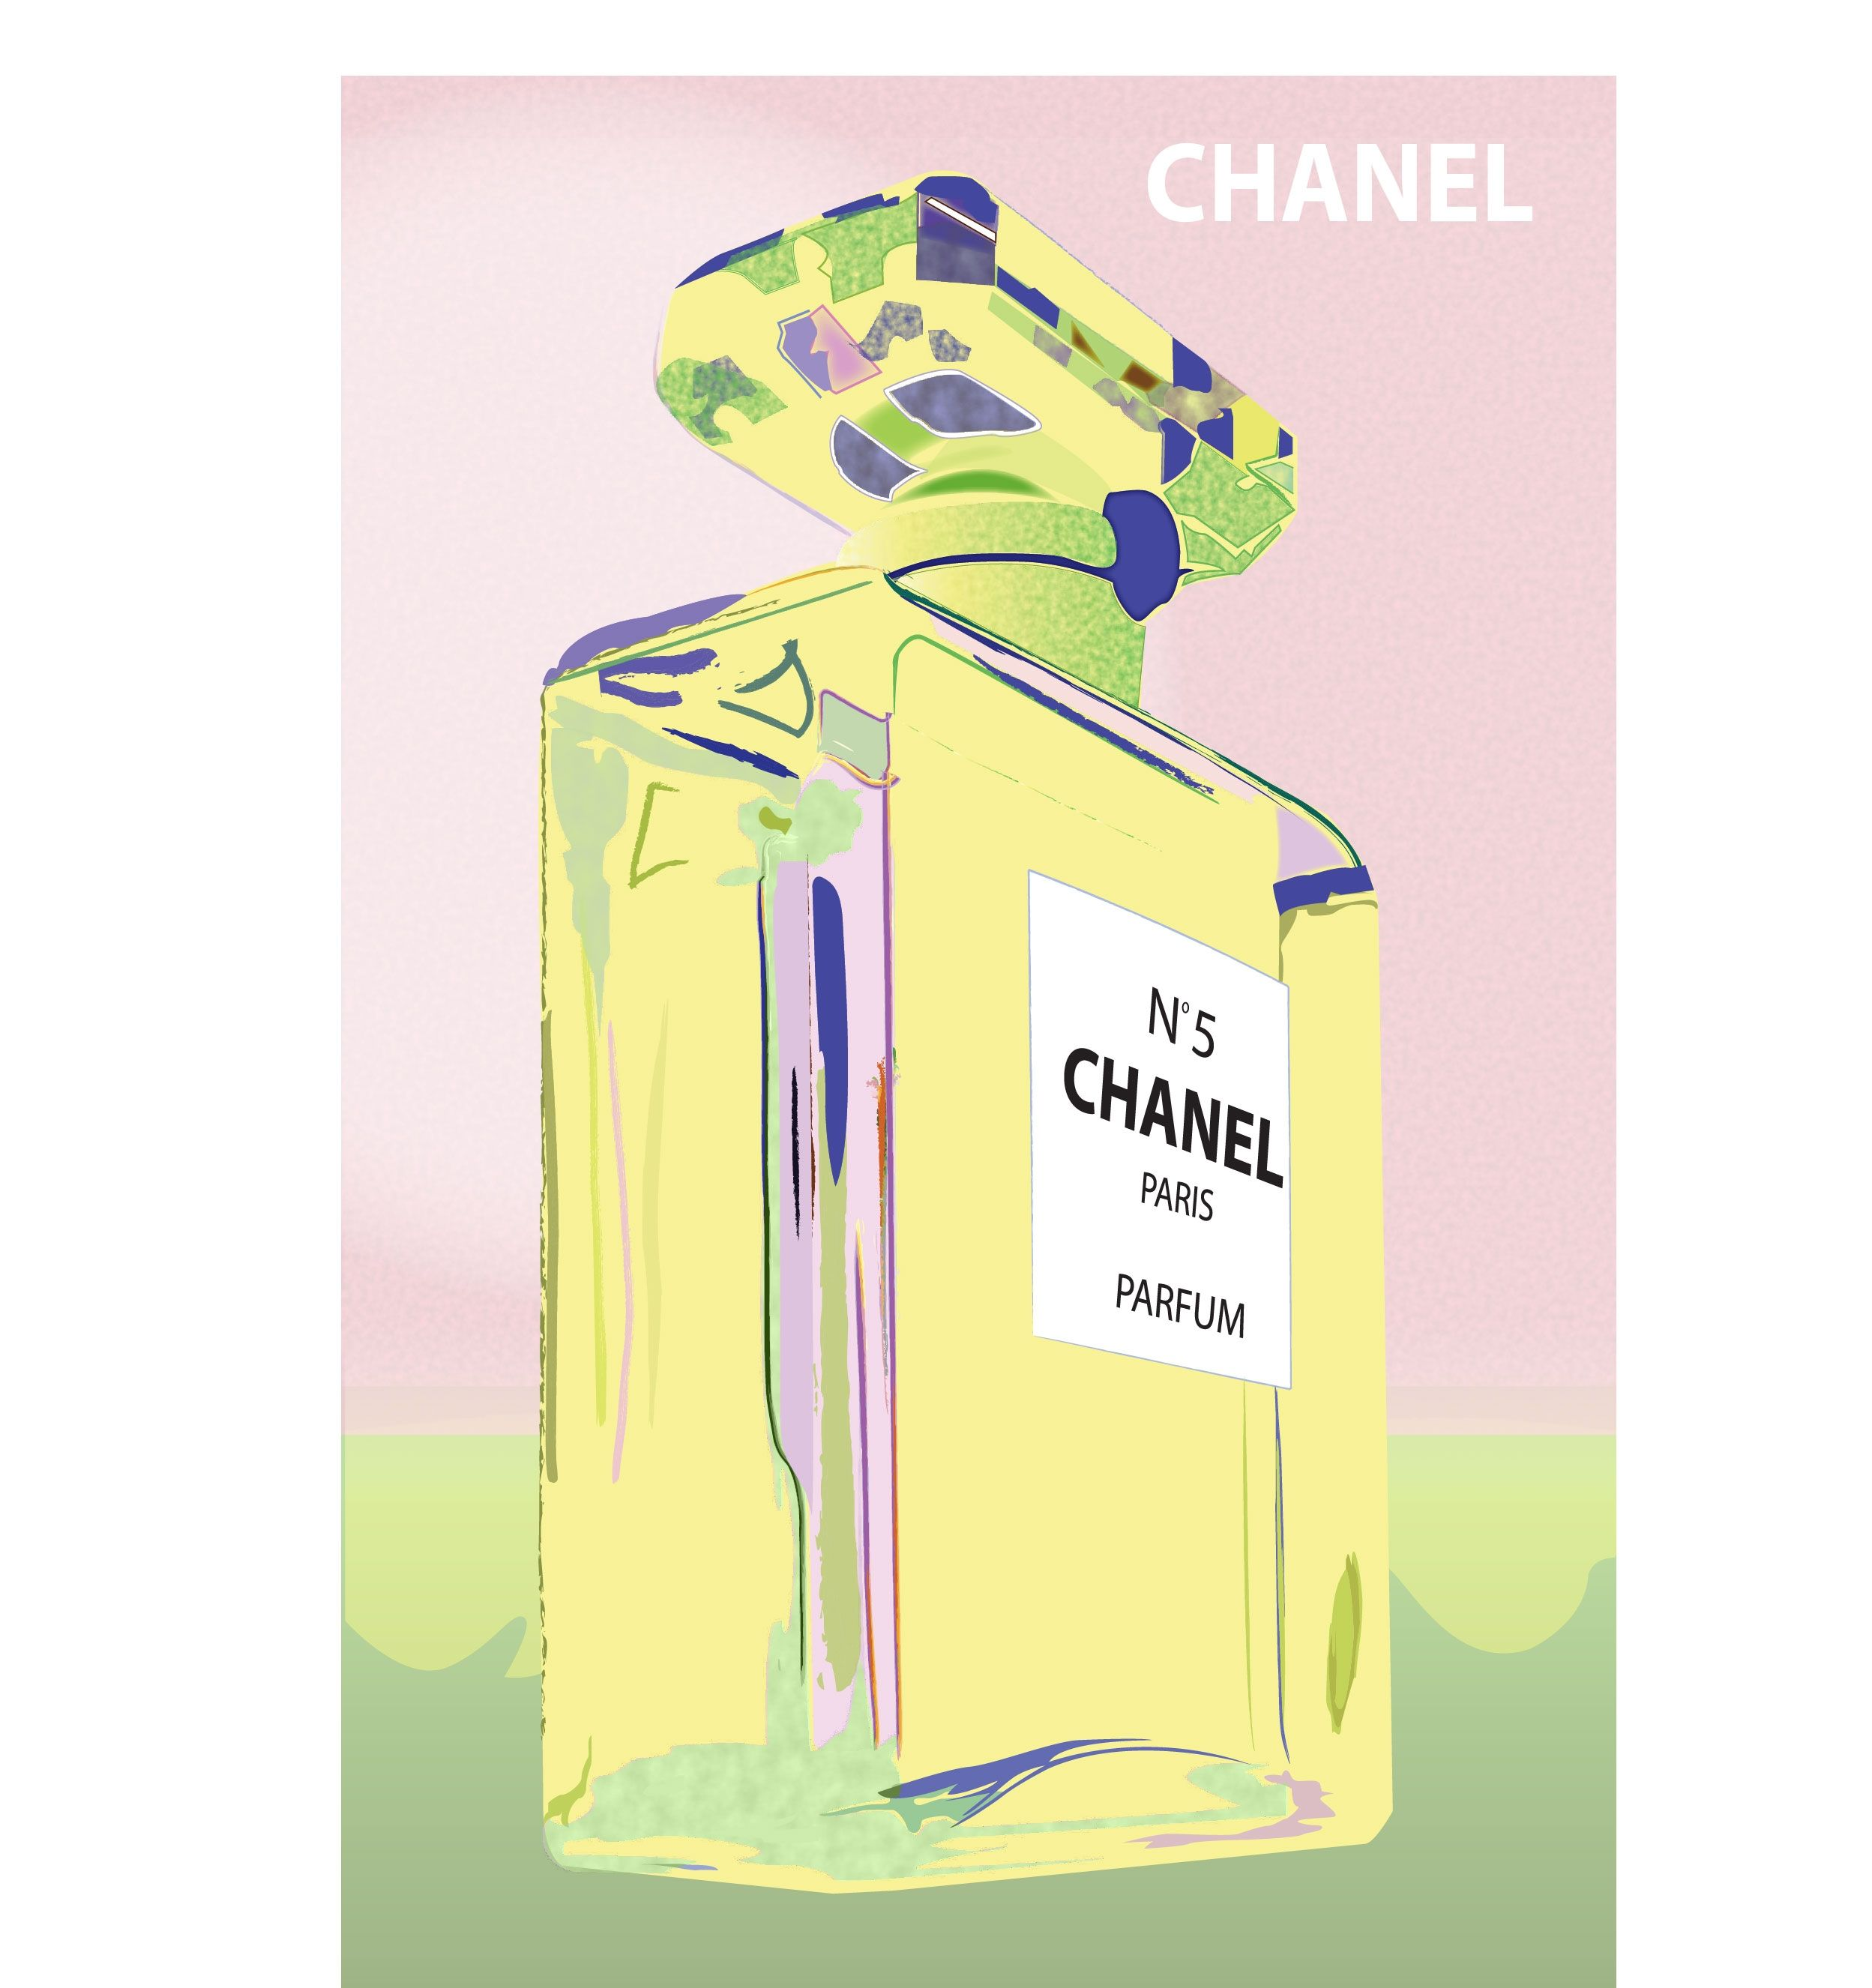 Chanel bottle print in pink & green | My Style | Pinterest | Sky ...